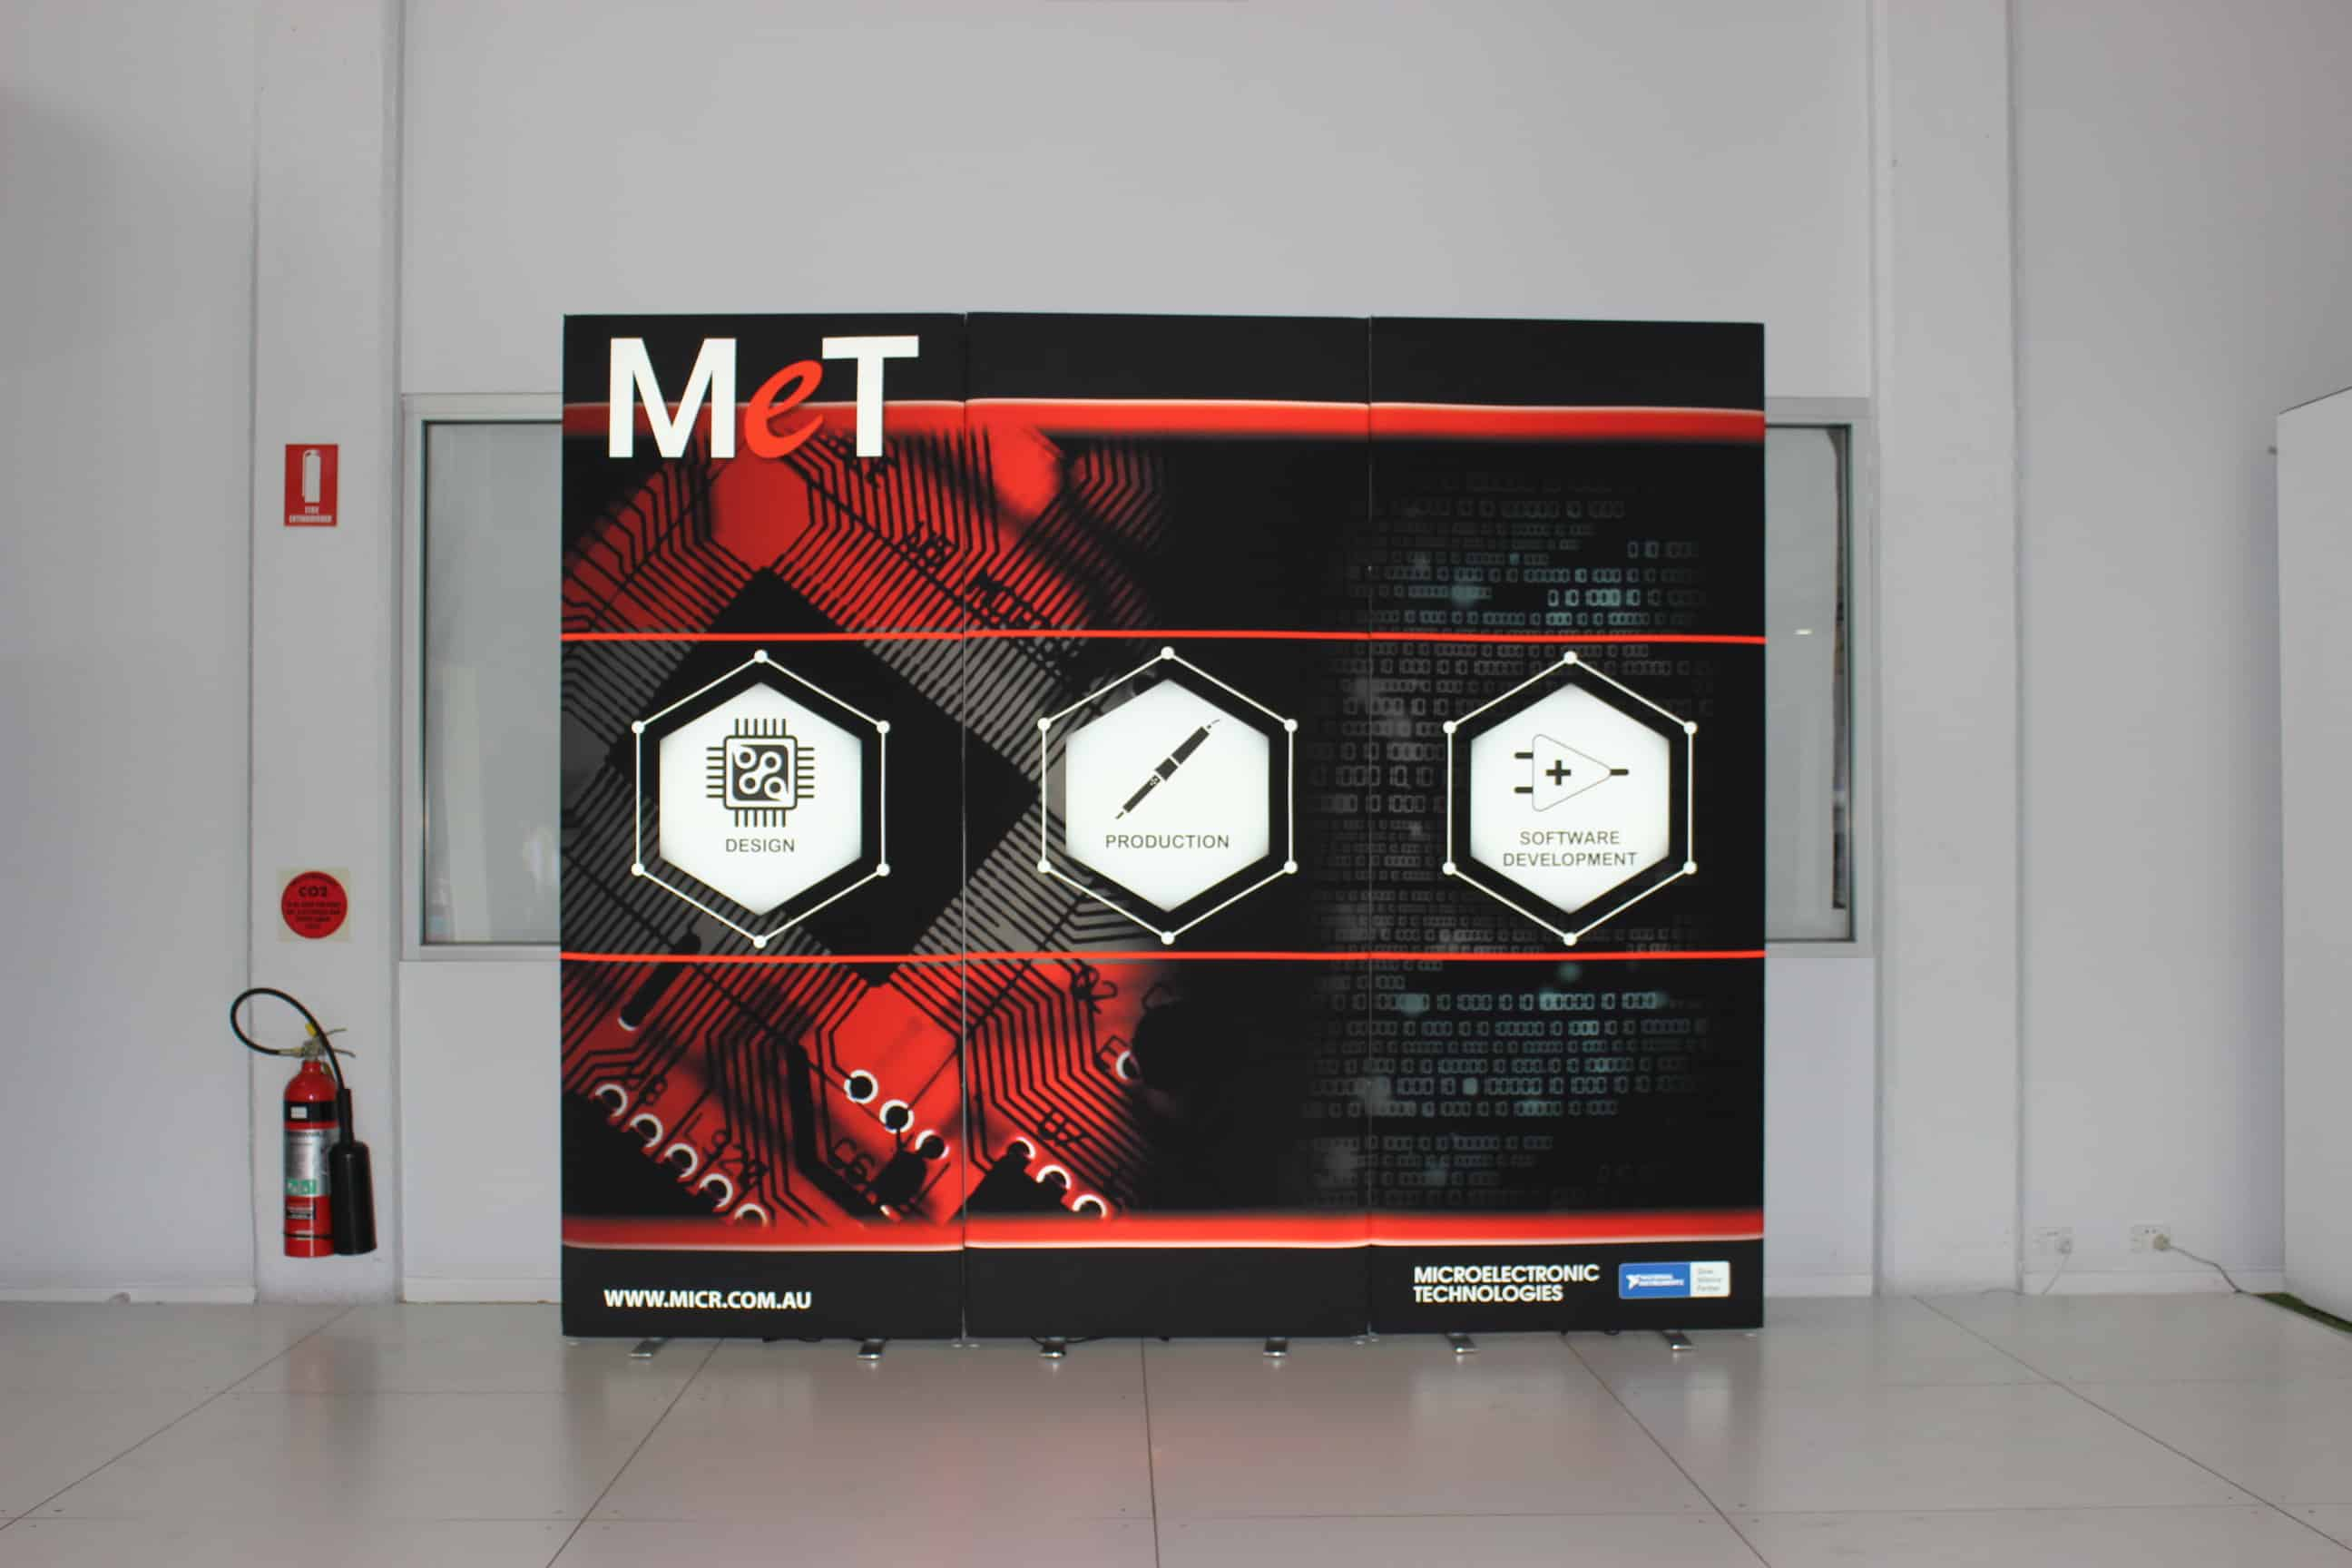 Lightspace Microelectronic Technologies Pty Ltf